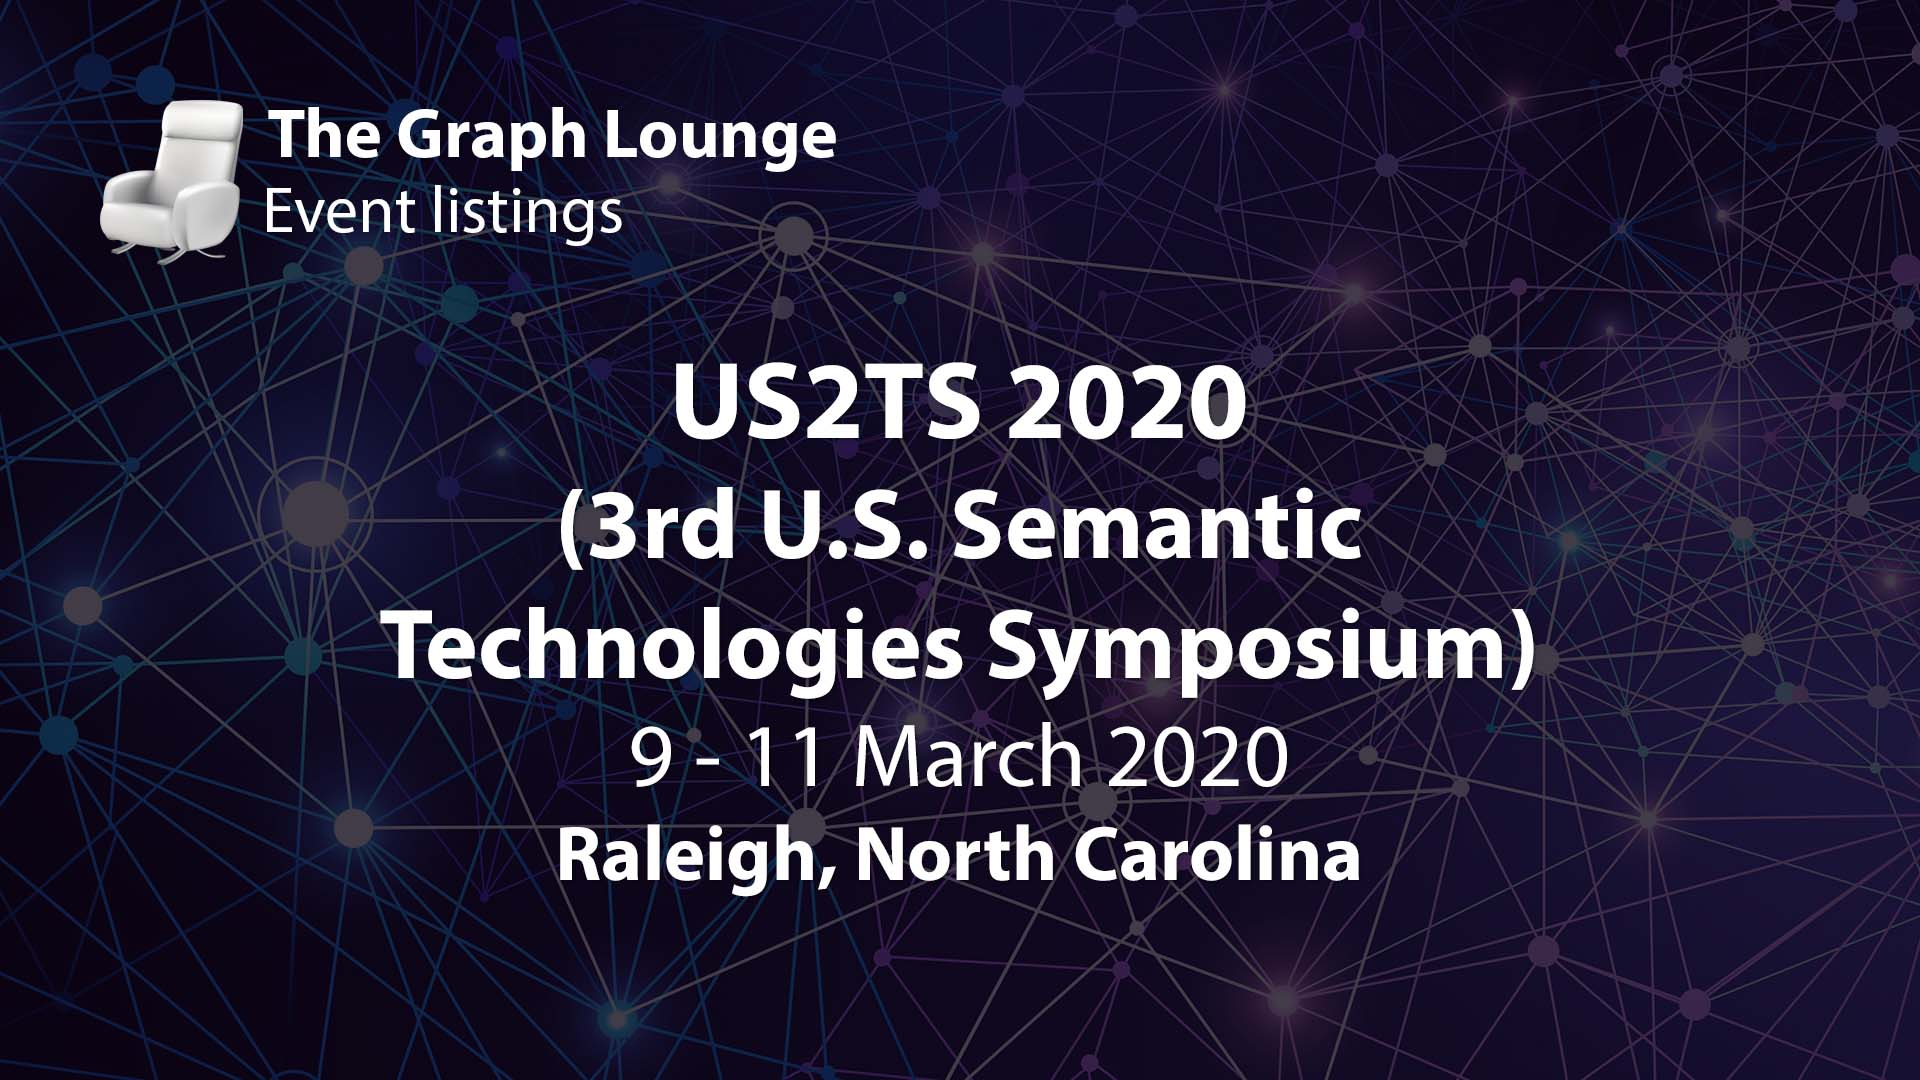 US2TS 2020 (3rd U.S. Semantic Technologies Symposium)